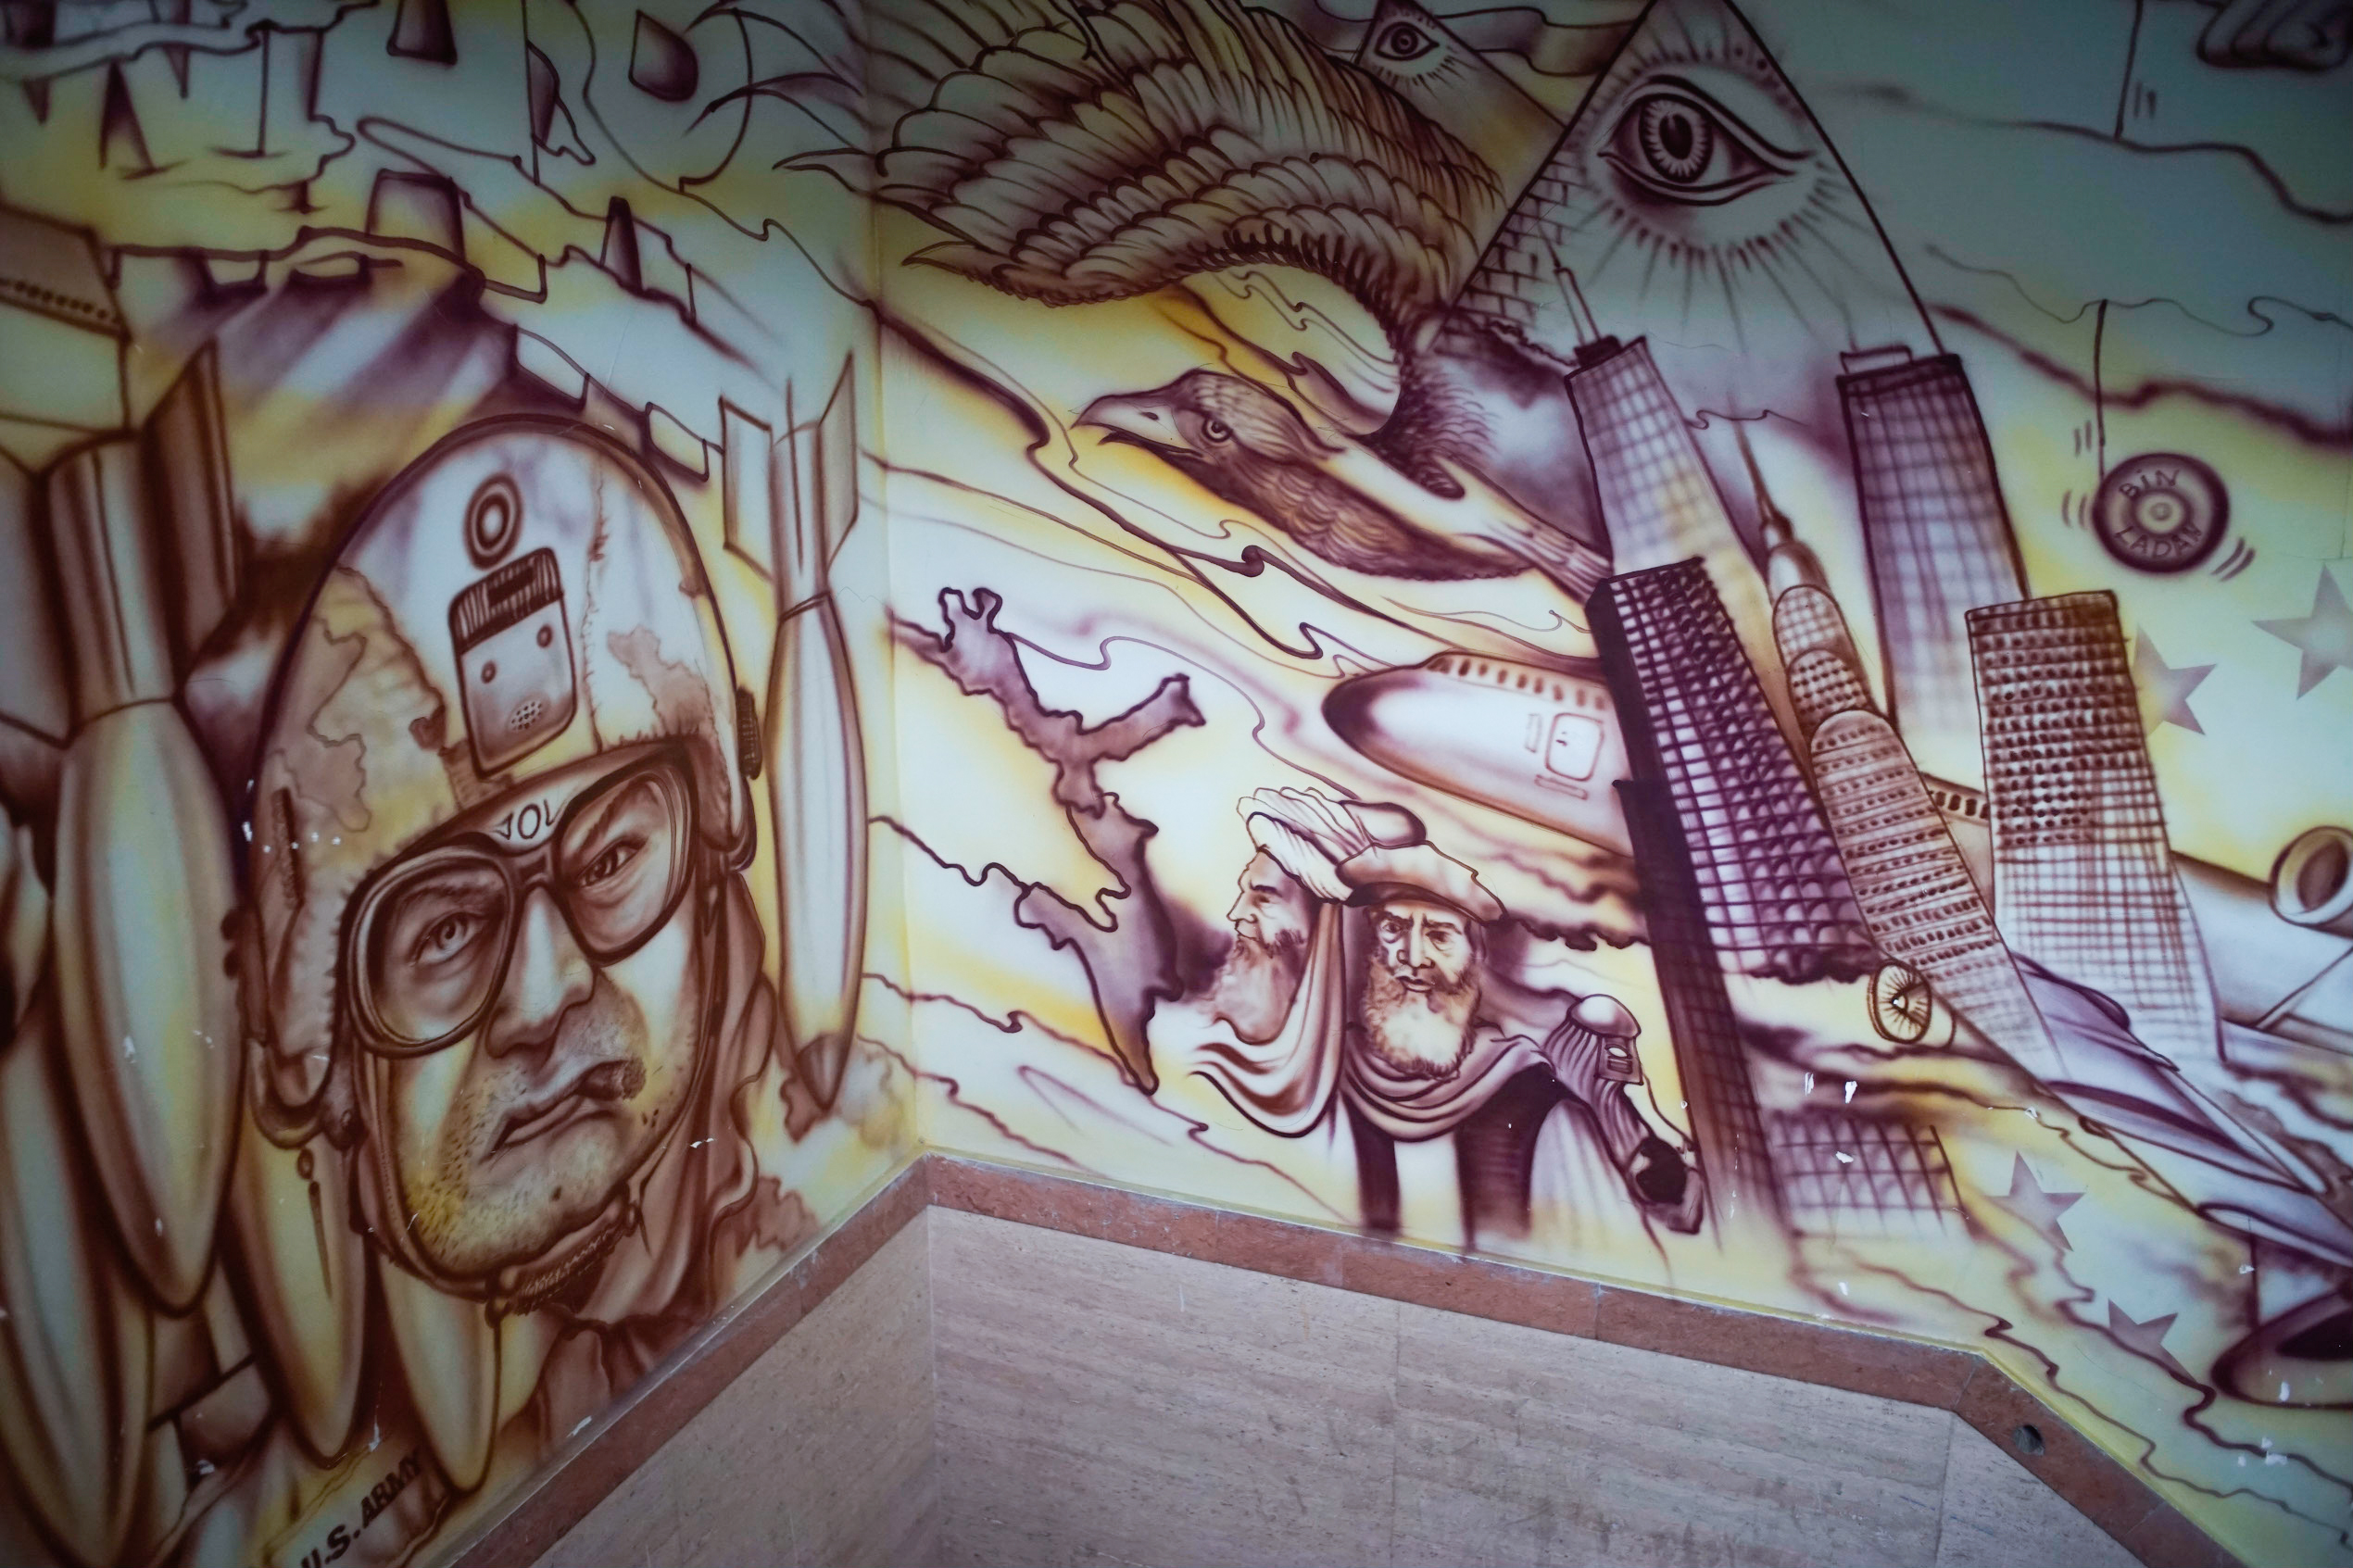 More detail of the murals leading up to the museum floor, including one which portrays a part of the conspiracy theory that 9/11 was engineered by the U.S. and Israel to help justify invading the Middle East. (Our tour guide affirmed his belief in this conspiracy, along with several others.)